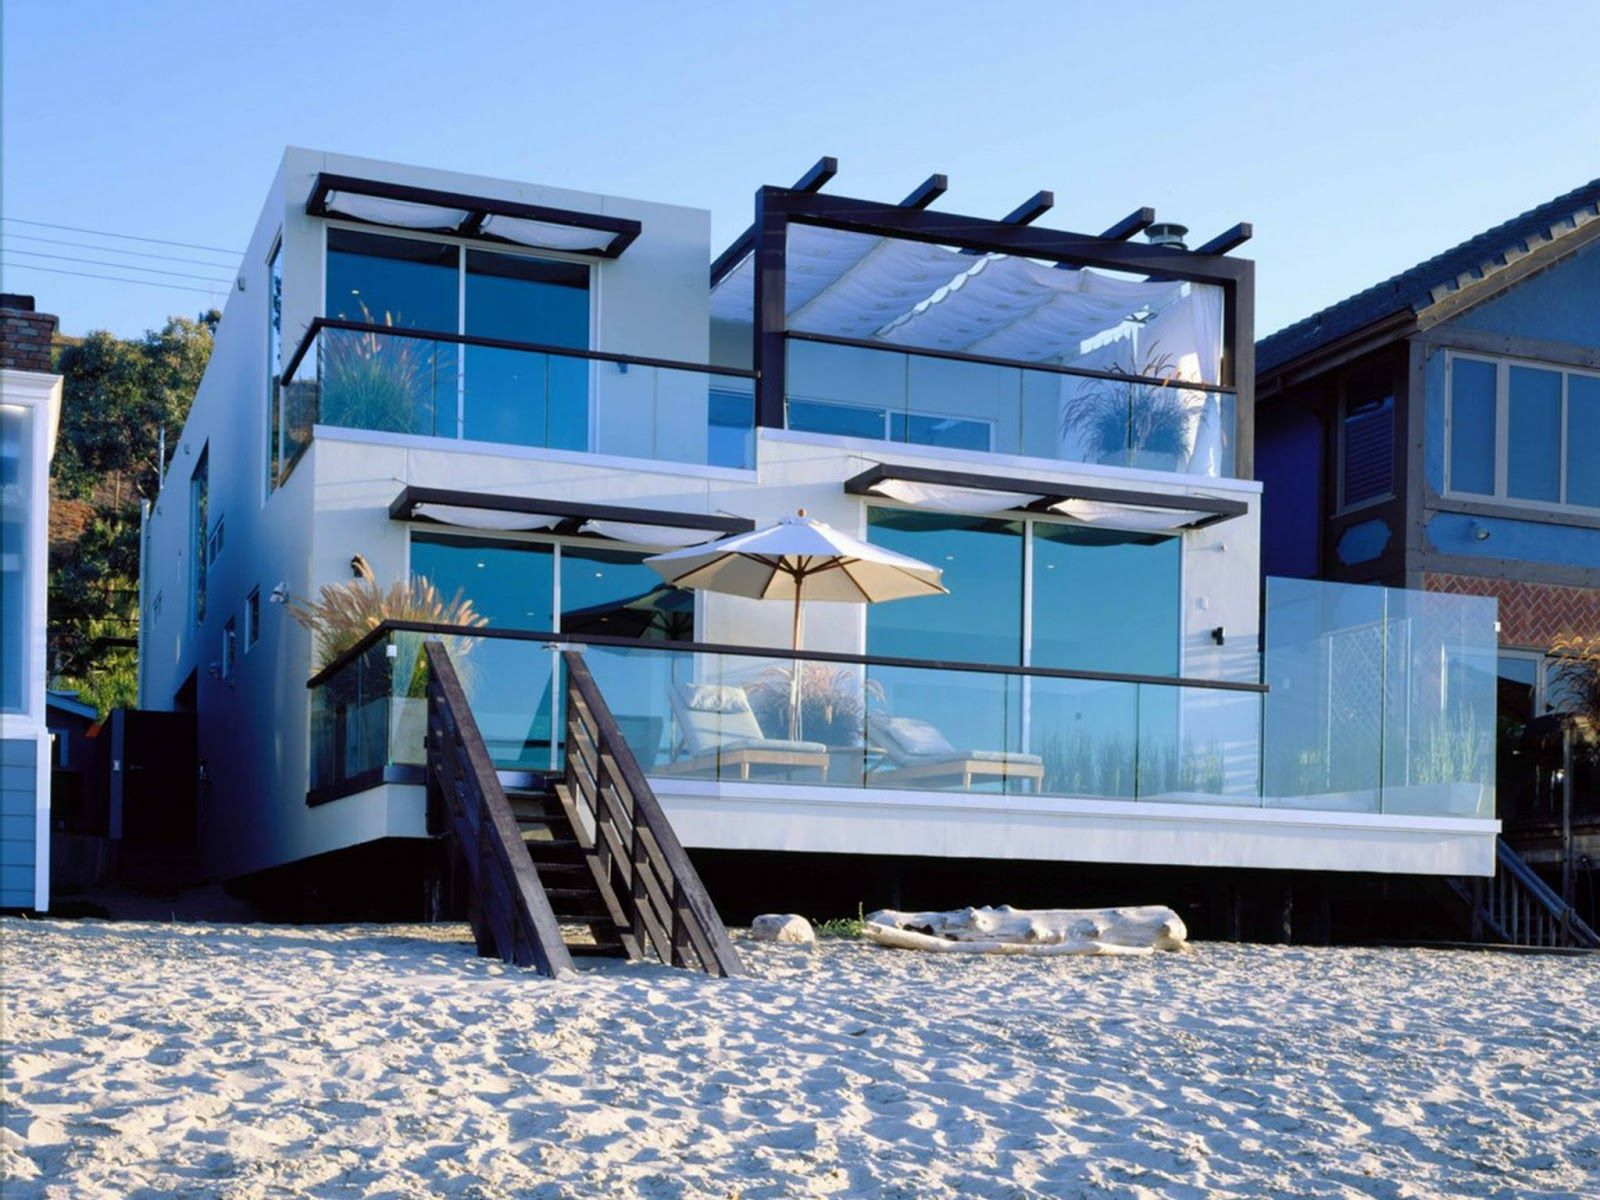 House Architecture Beautiful Beach Houses Design In Hawaii Malibu Beach House Beautiful Beach Houses Beach House Design